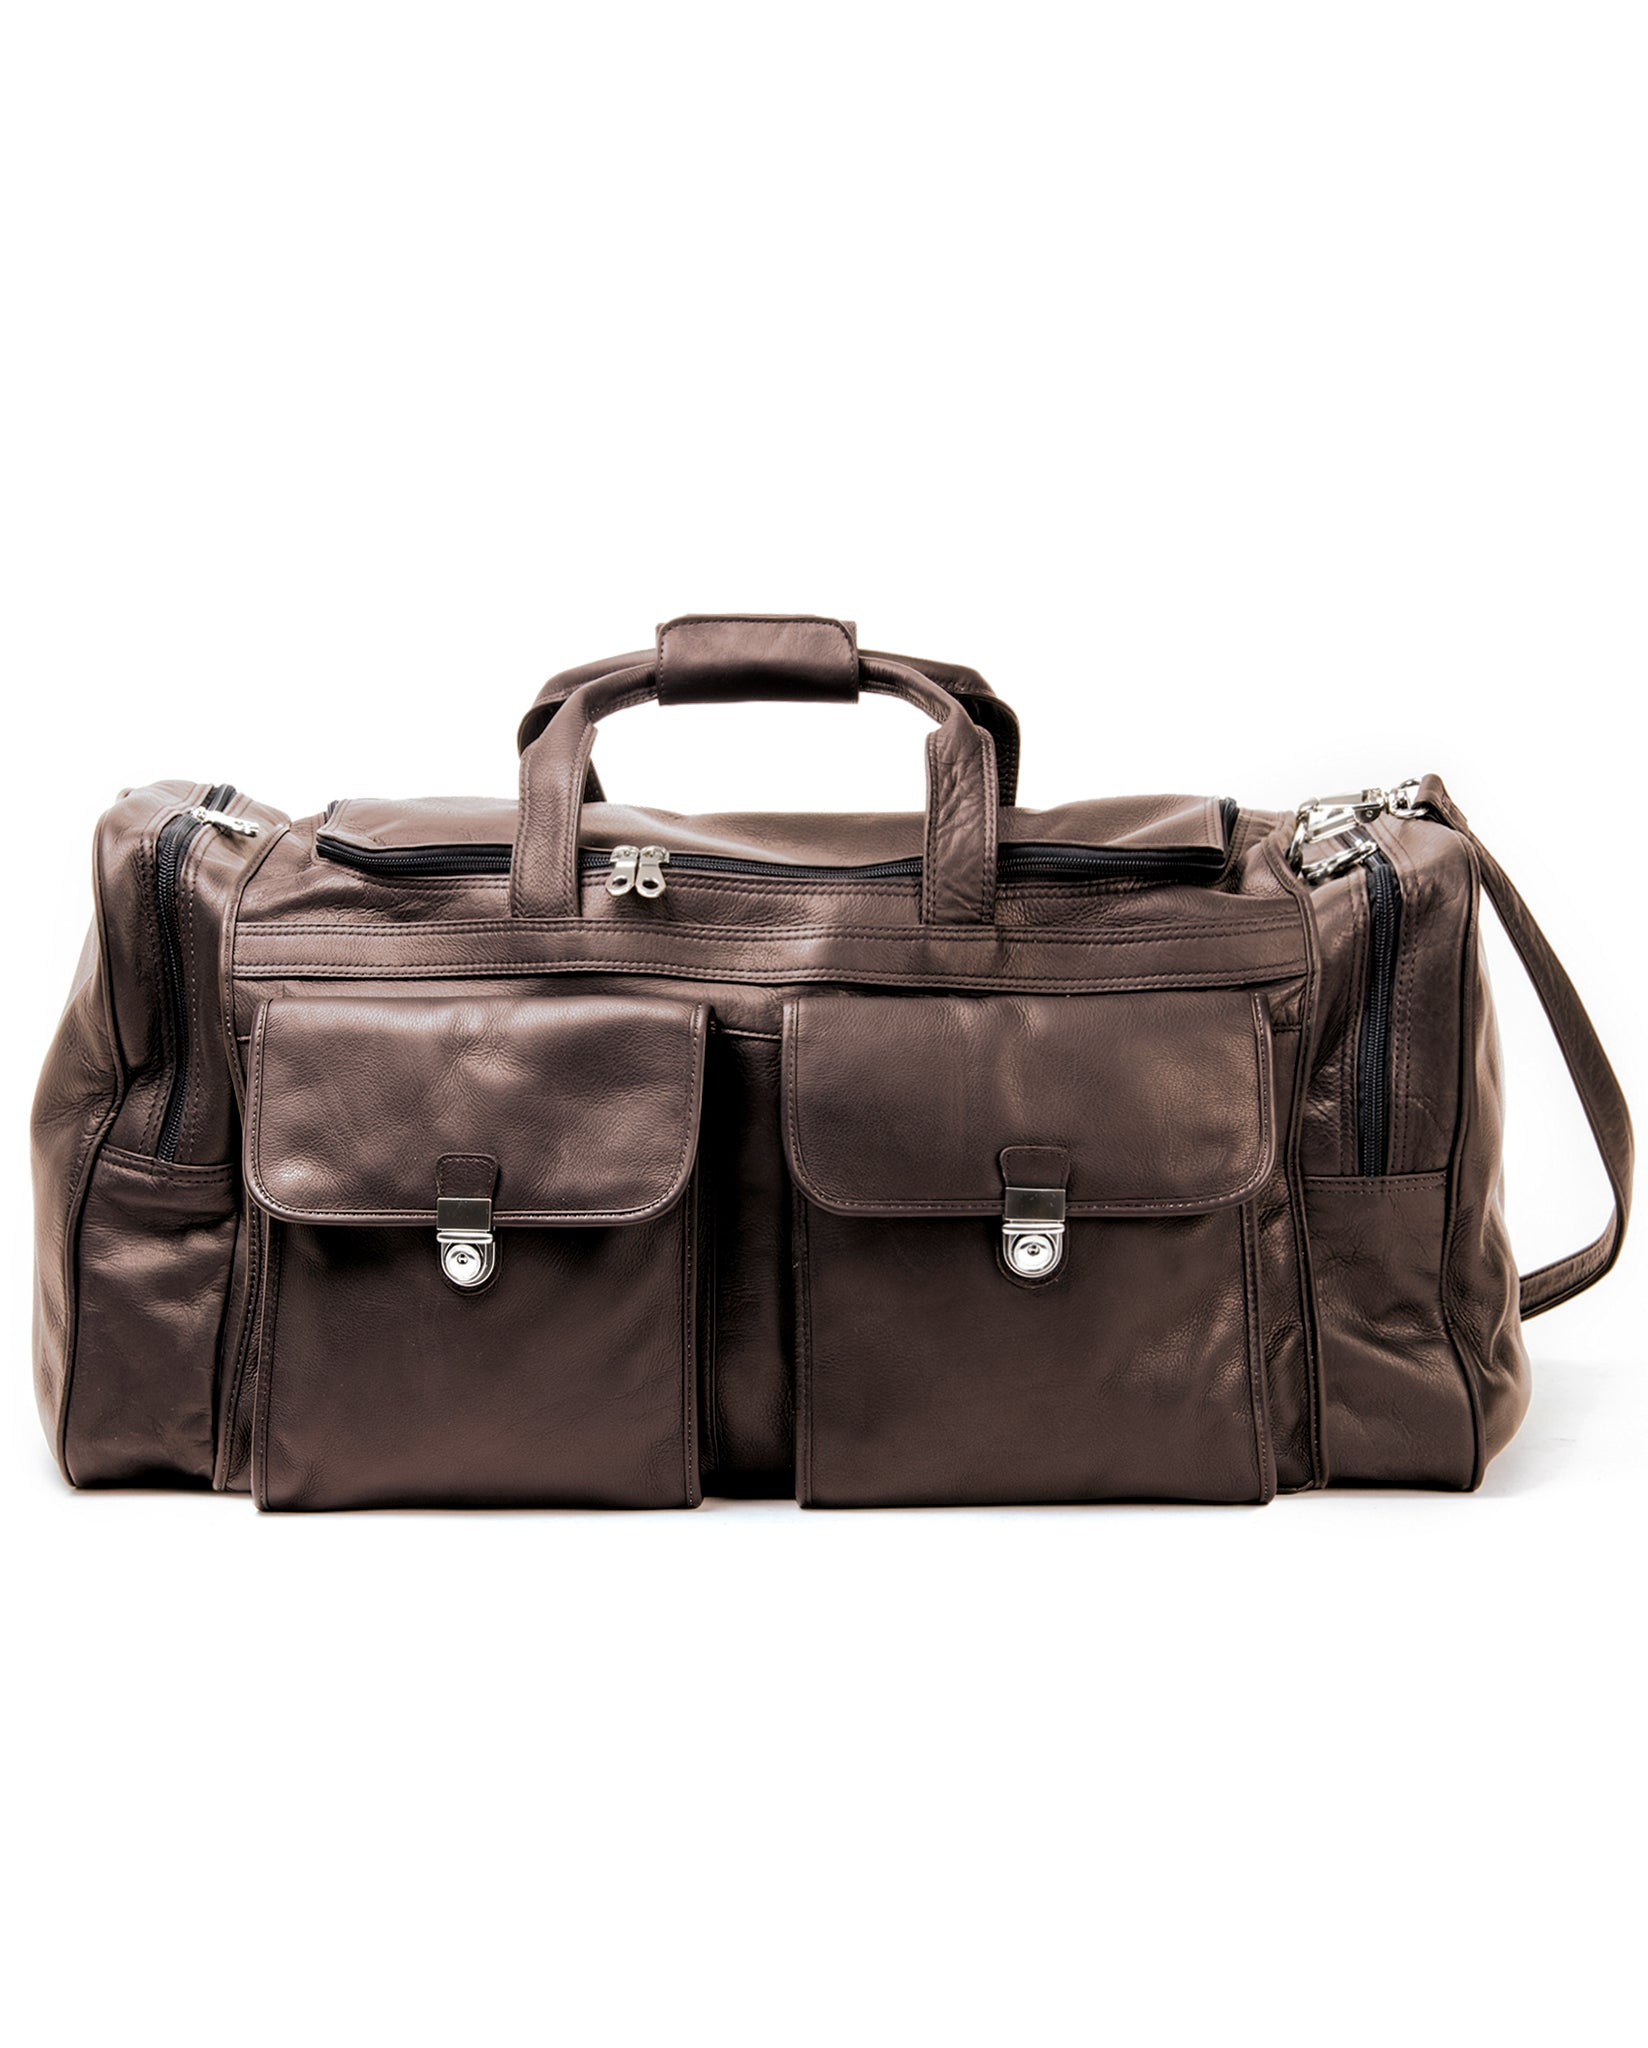 Country Travelbag extra large